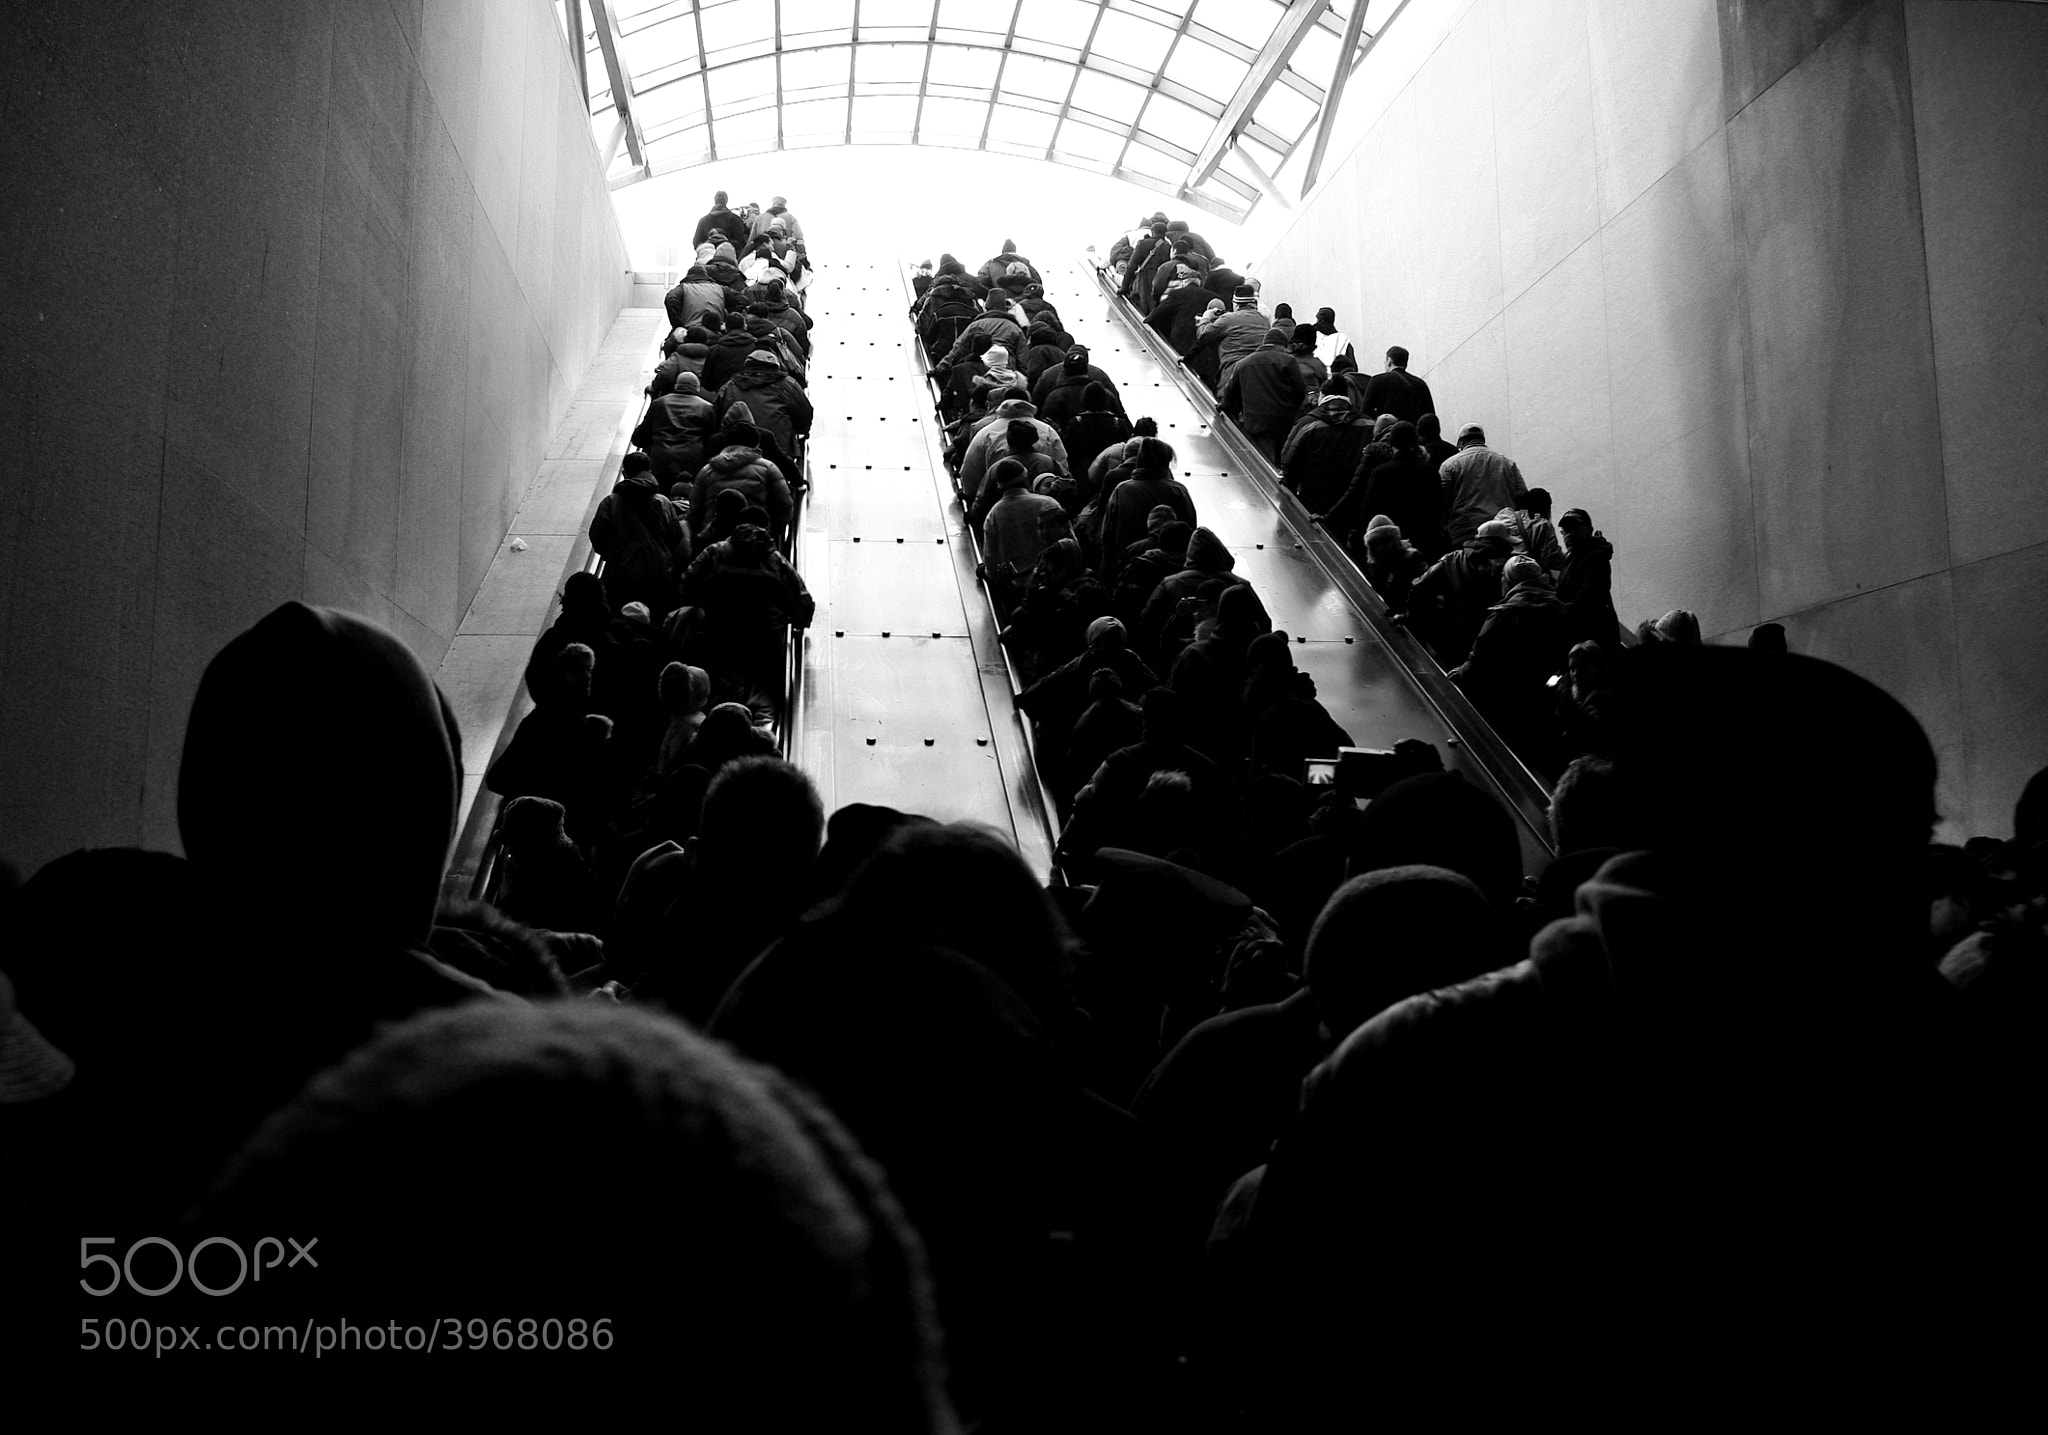 Photograph Ascending by Michael T. McNerney on 500px